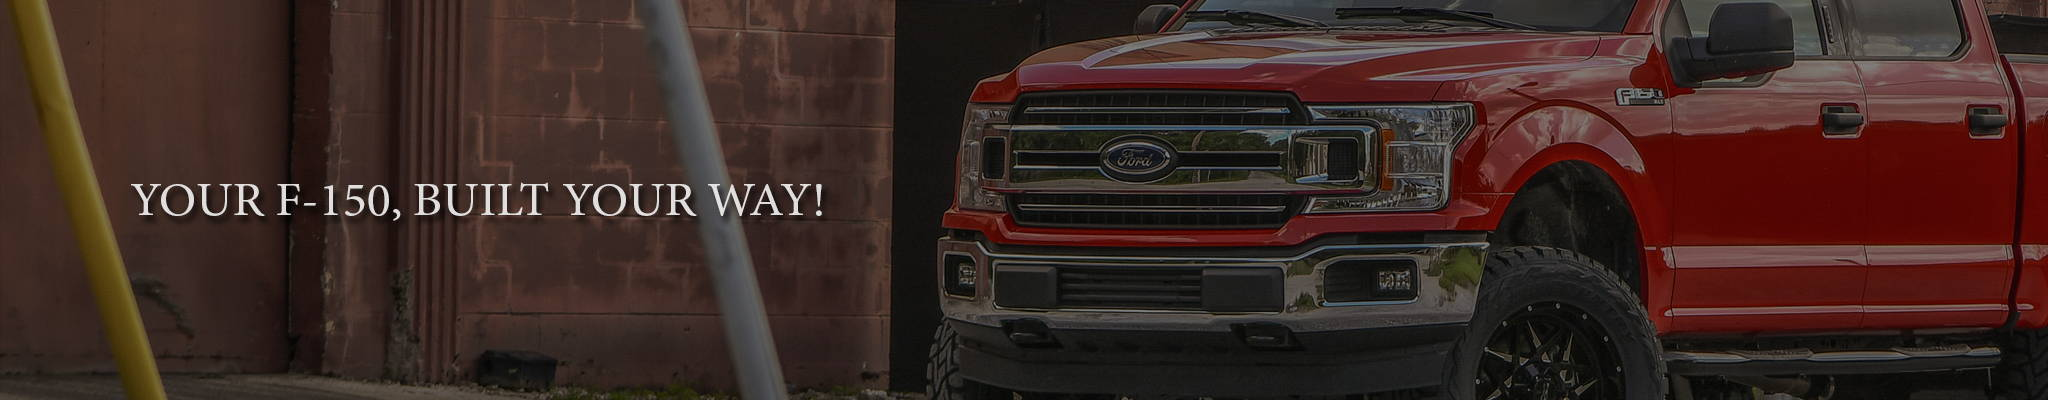 3C Truck Conversions Your Ford F150 Truck Built Your Way! Customize your Build Here.